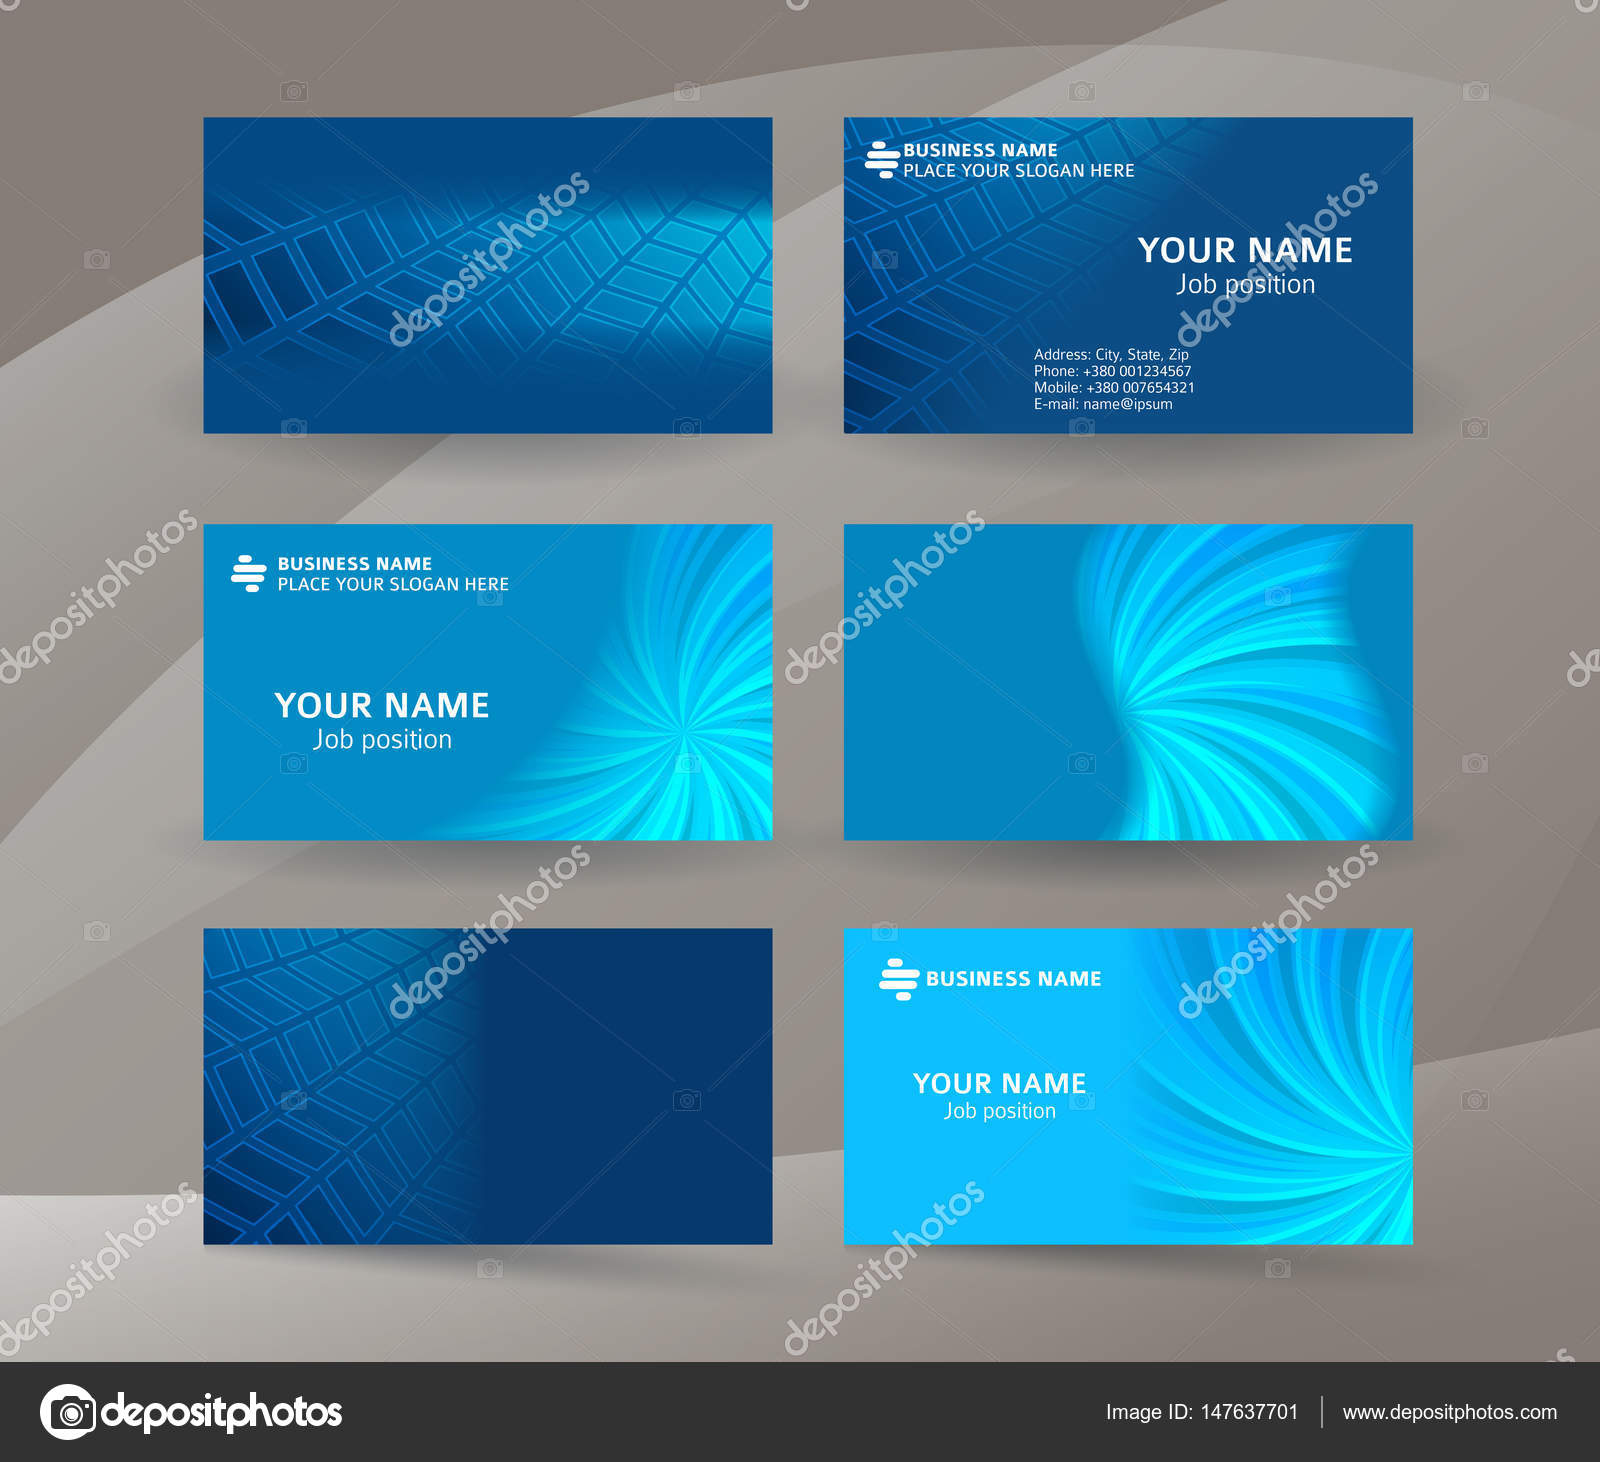 Business Card Background Blue Set Of Horizontal Templates05